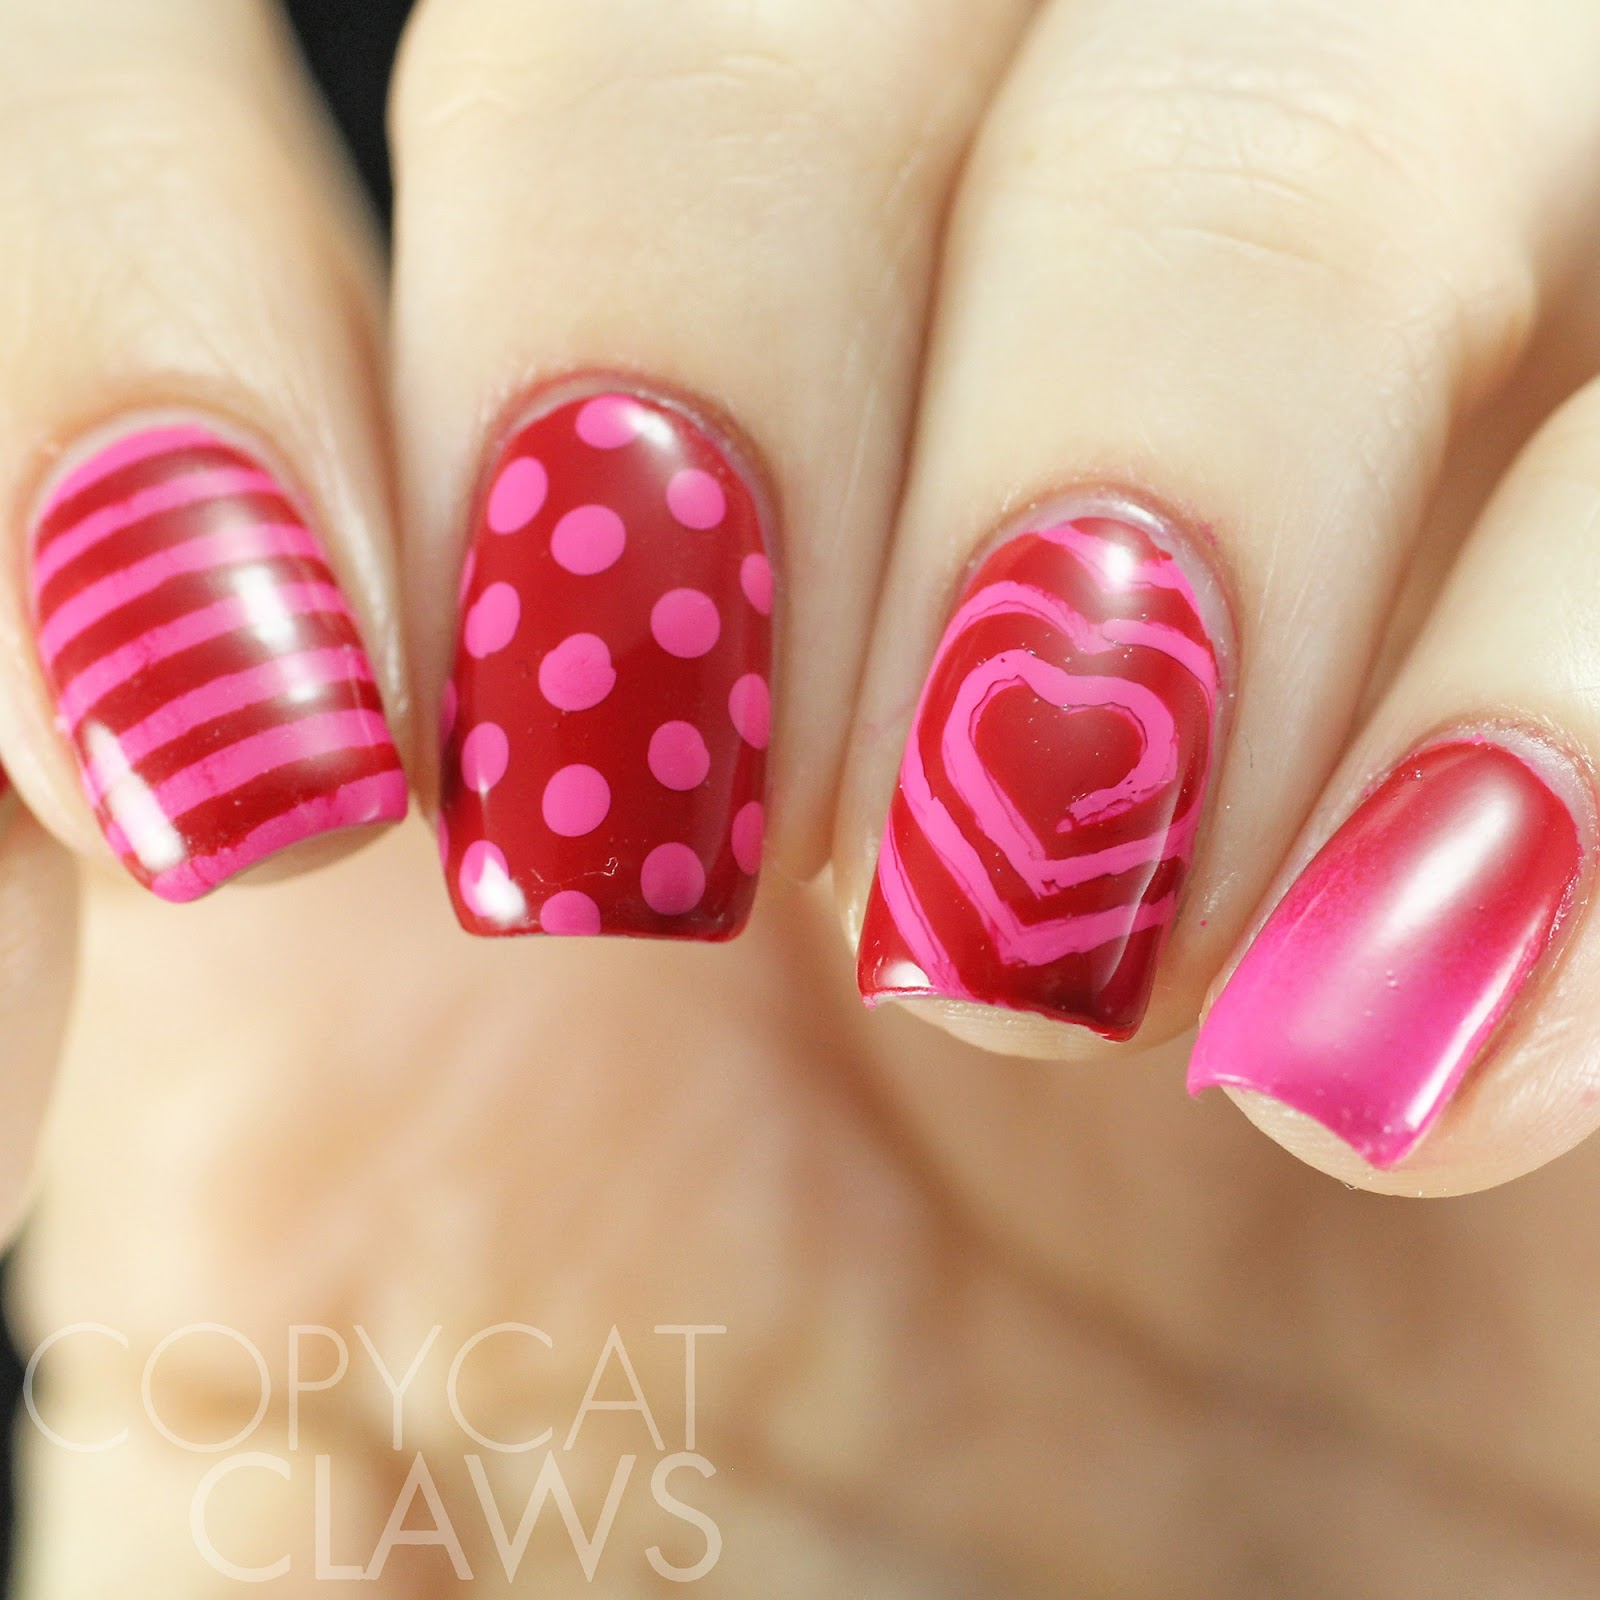 Copycat Claws Pink And Red Skittle Nail Art